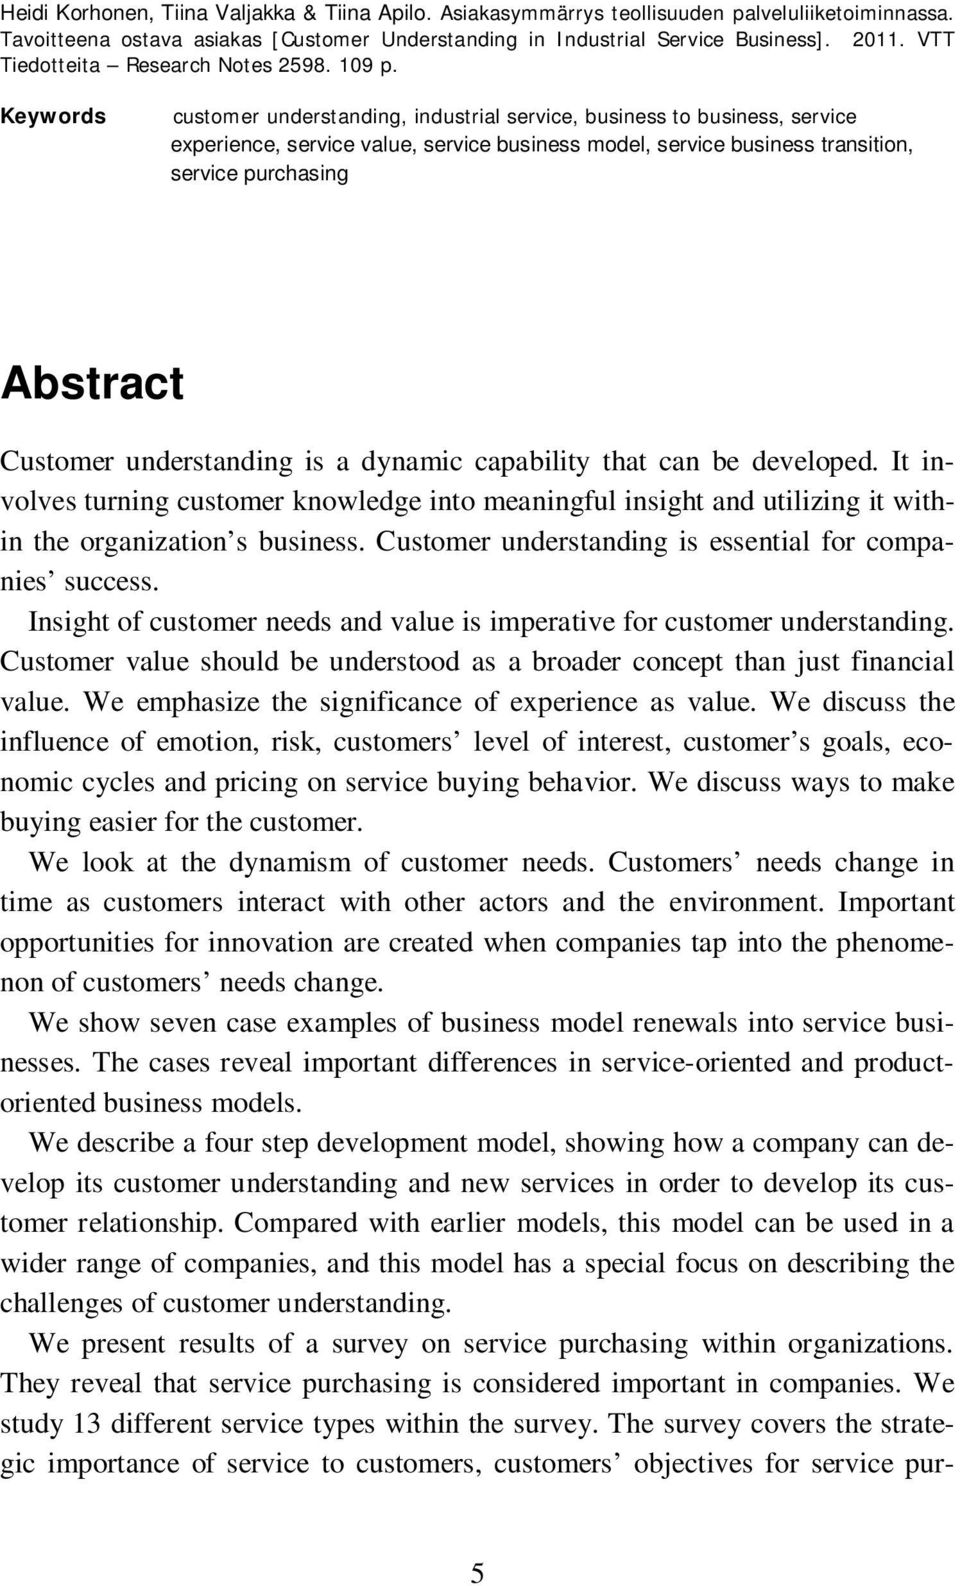 Keywords customer understanding, industrial service, business to business, service experience, service value, service business model, service business transition, service purchasing Abstract Customer